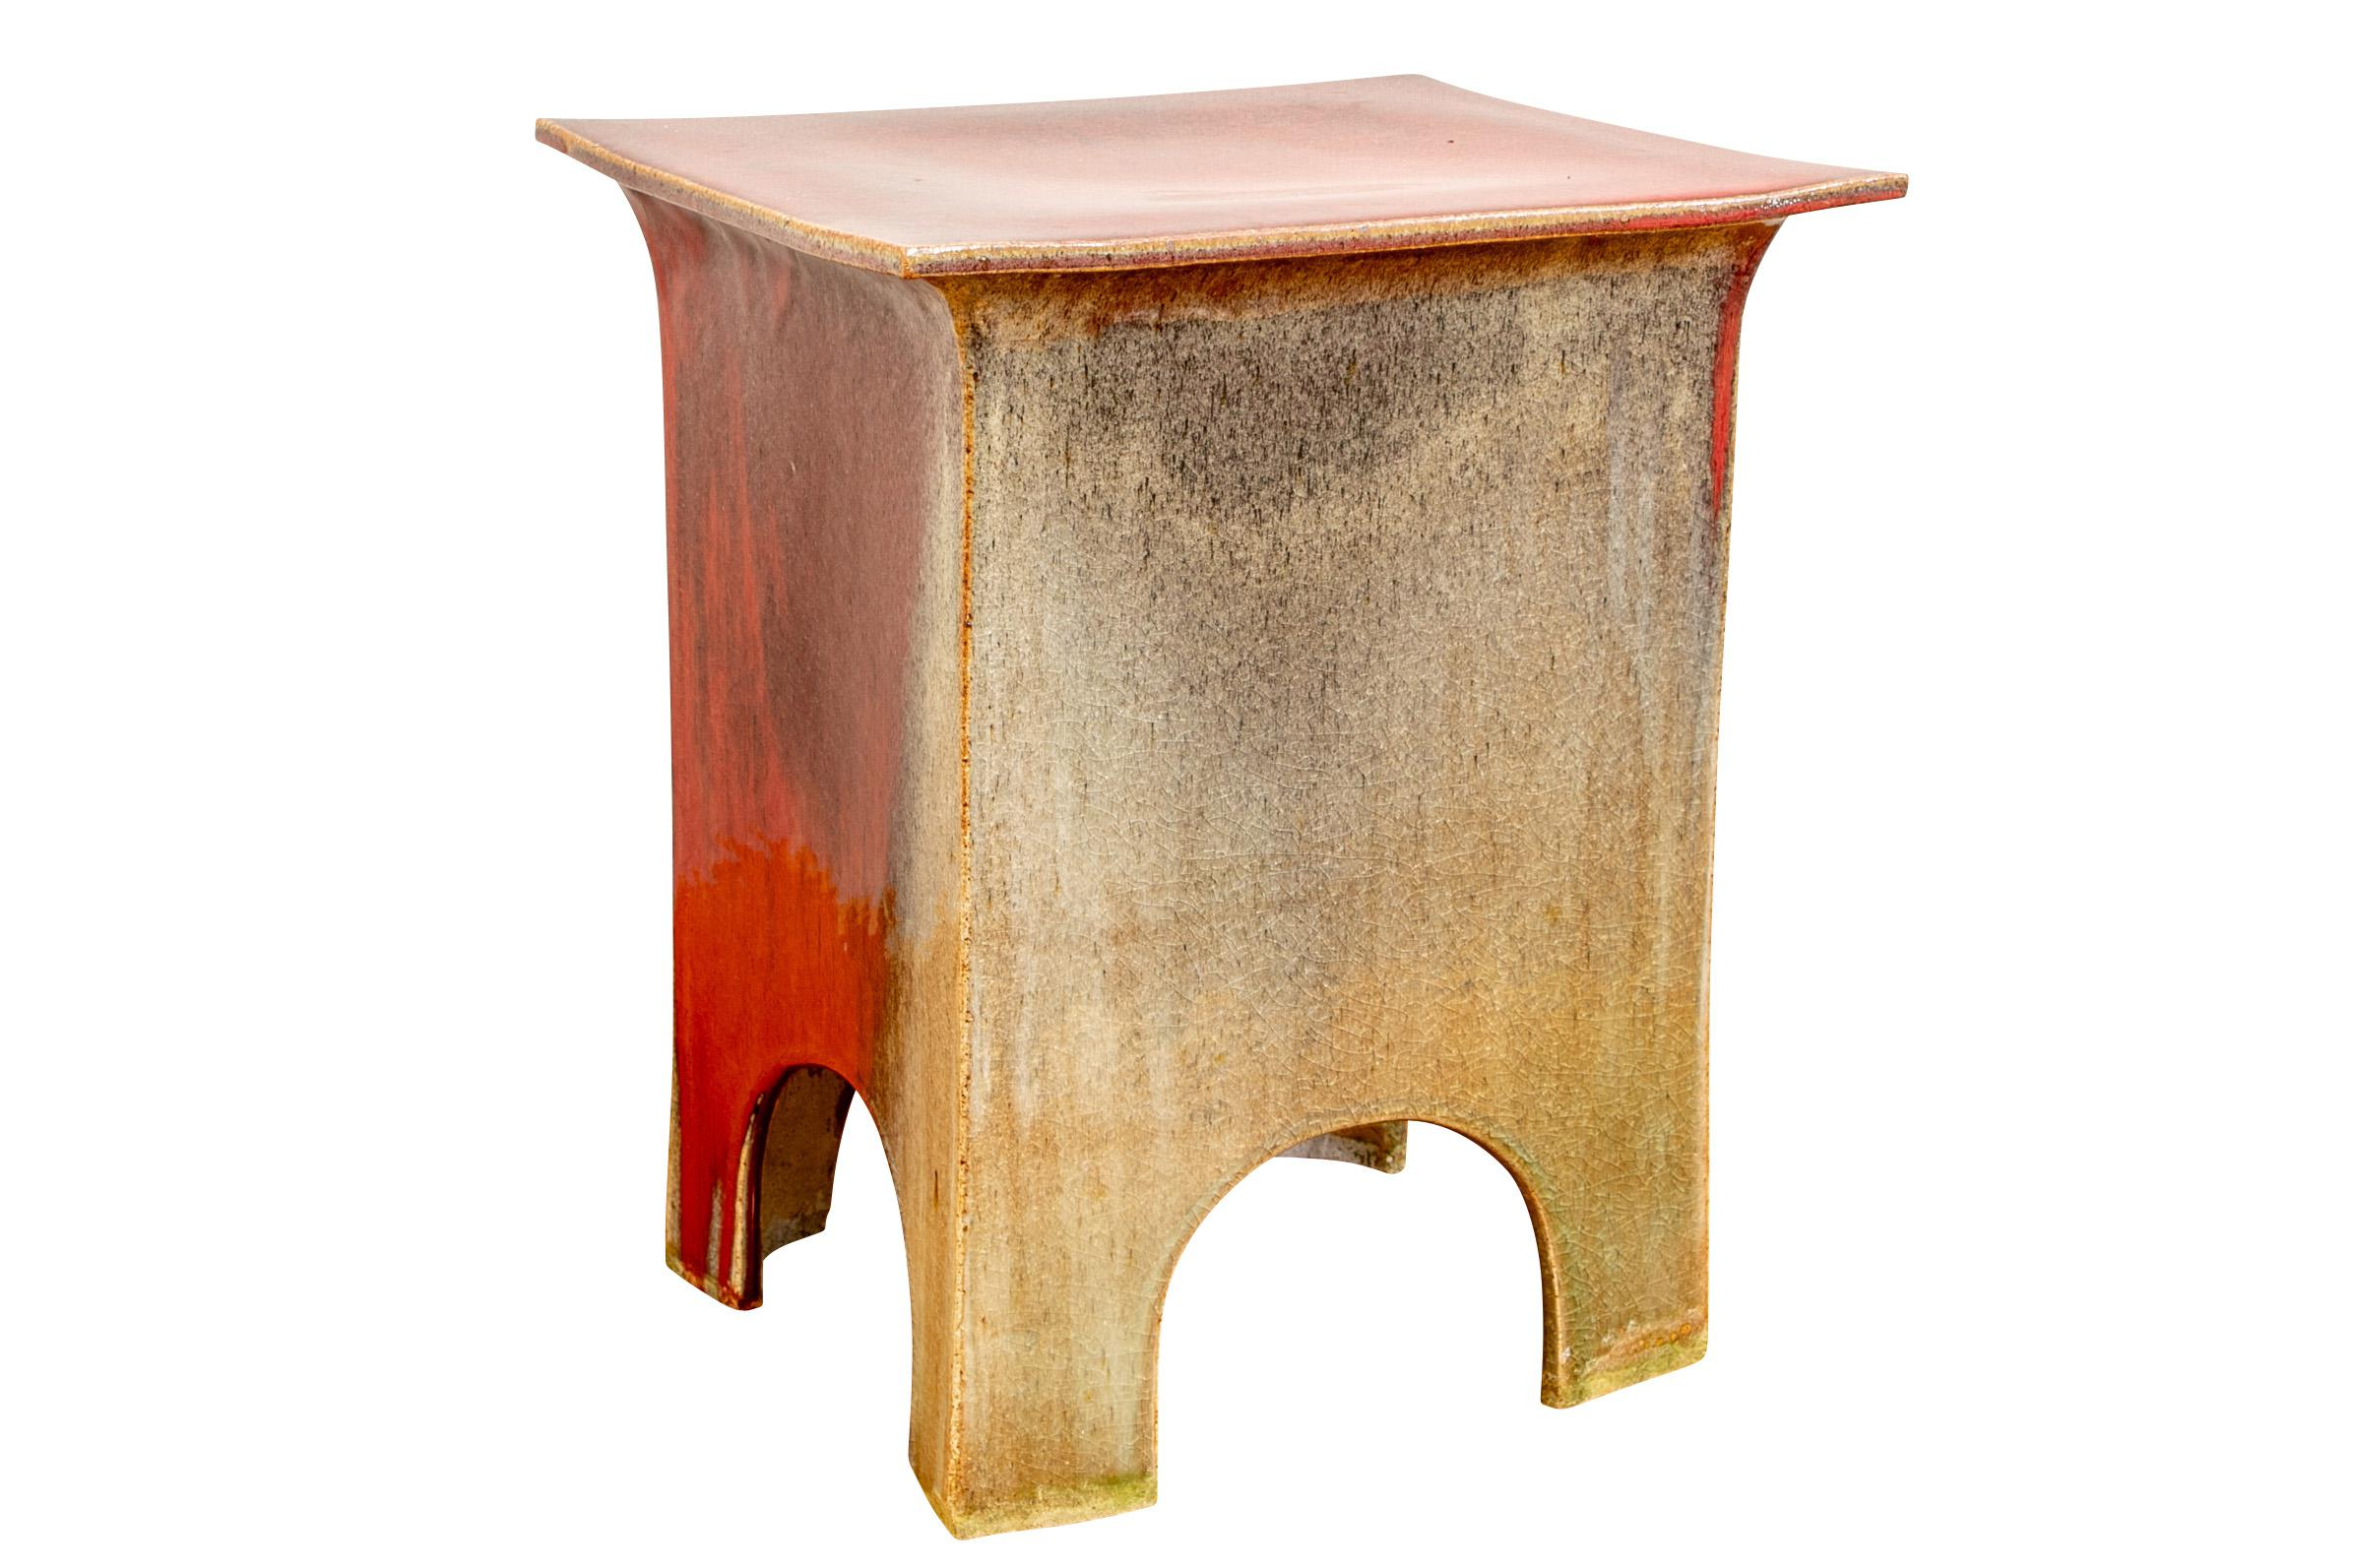 This Japanese Garden Seat Displays A Palette Of Celadon And Sang De Boeuf  Colors And Makes